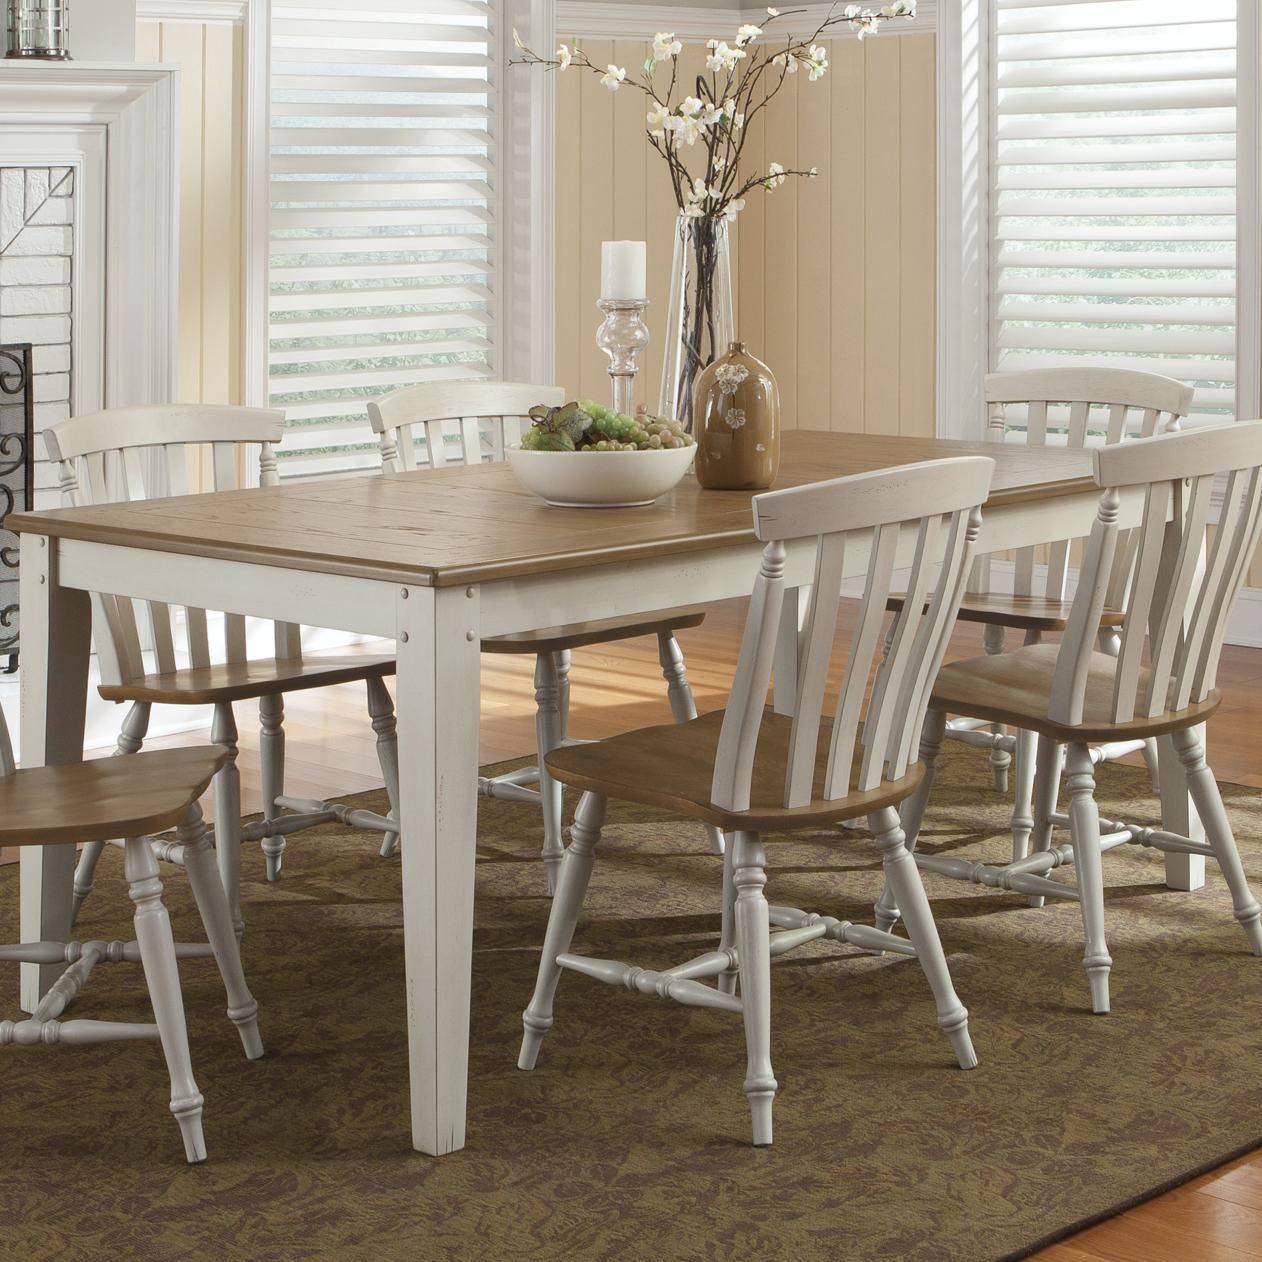 Al Fresco III Rectangular Leg Table by Liberty Furniture at Steger's Furniture